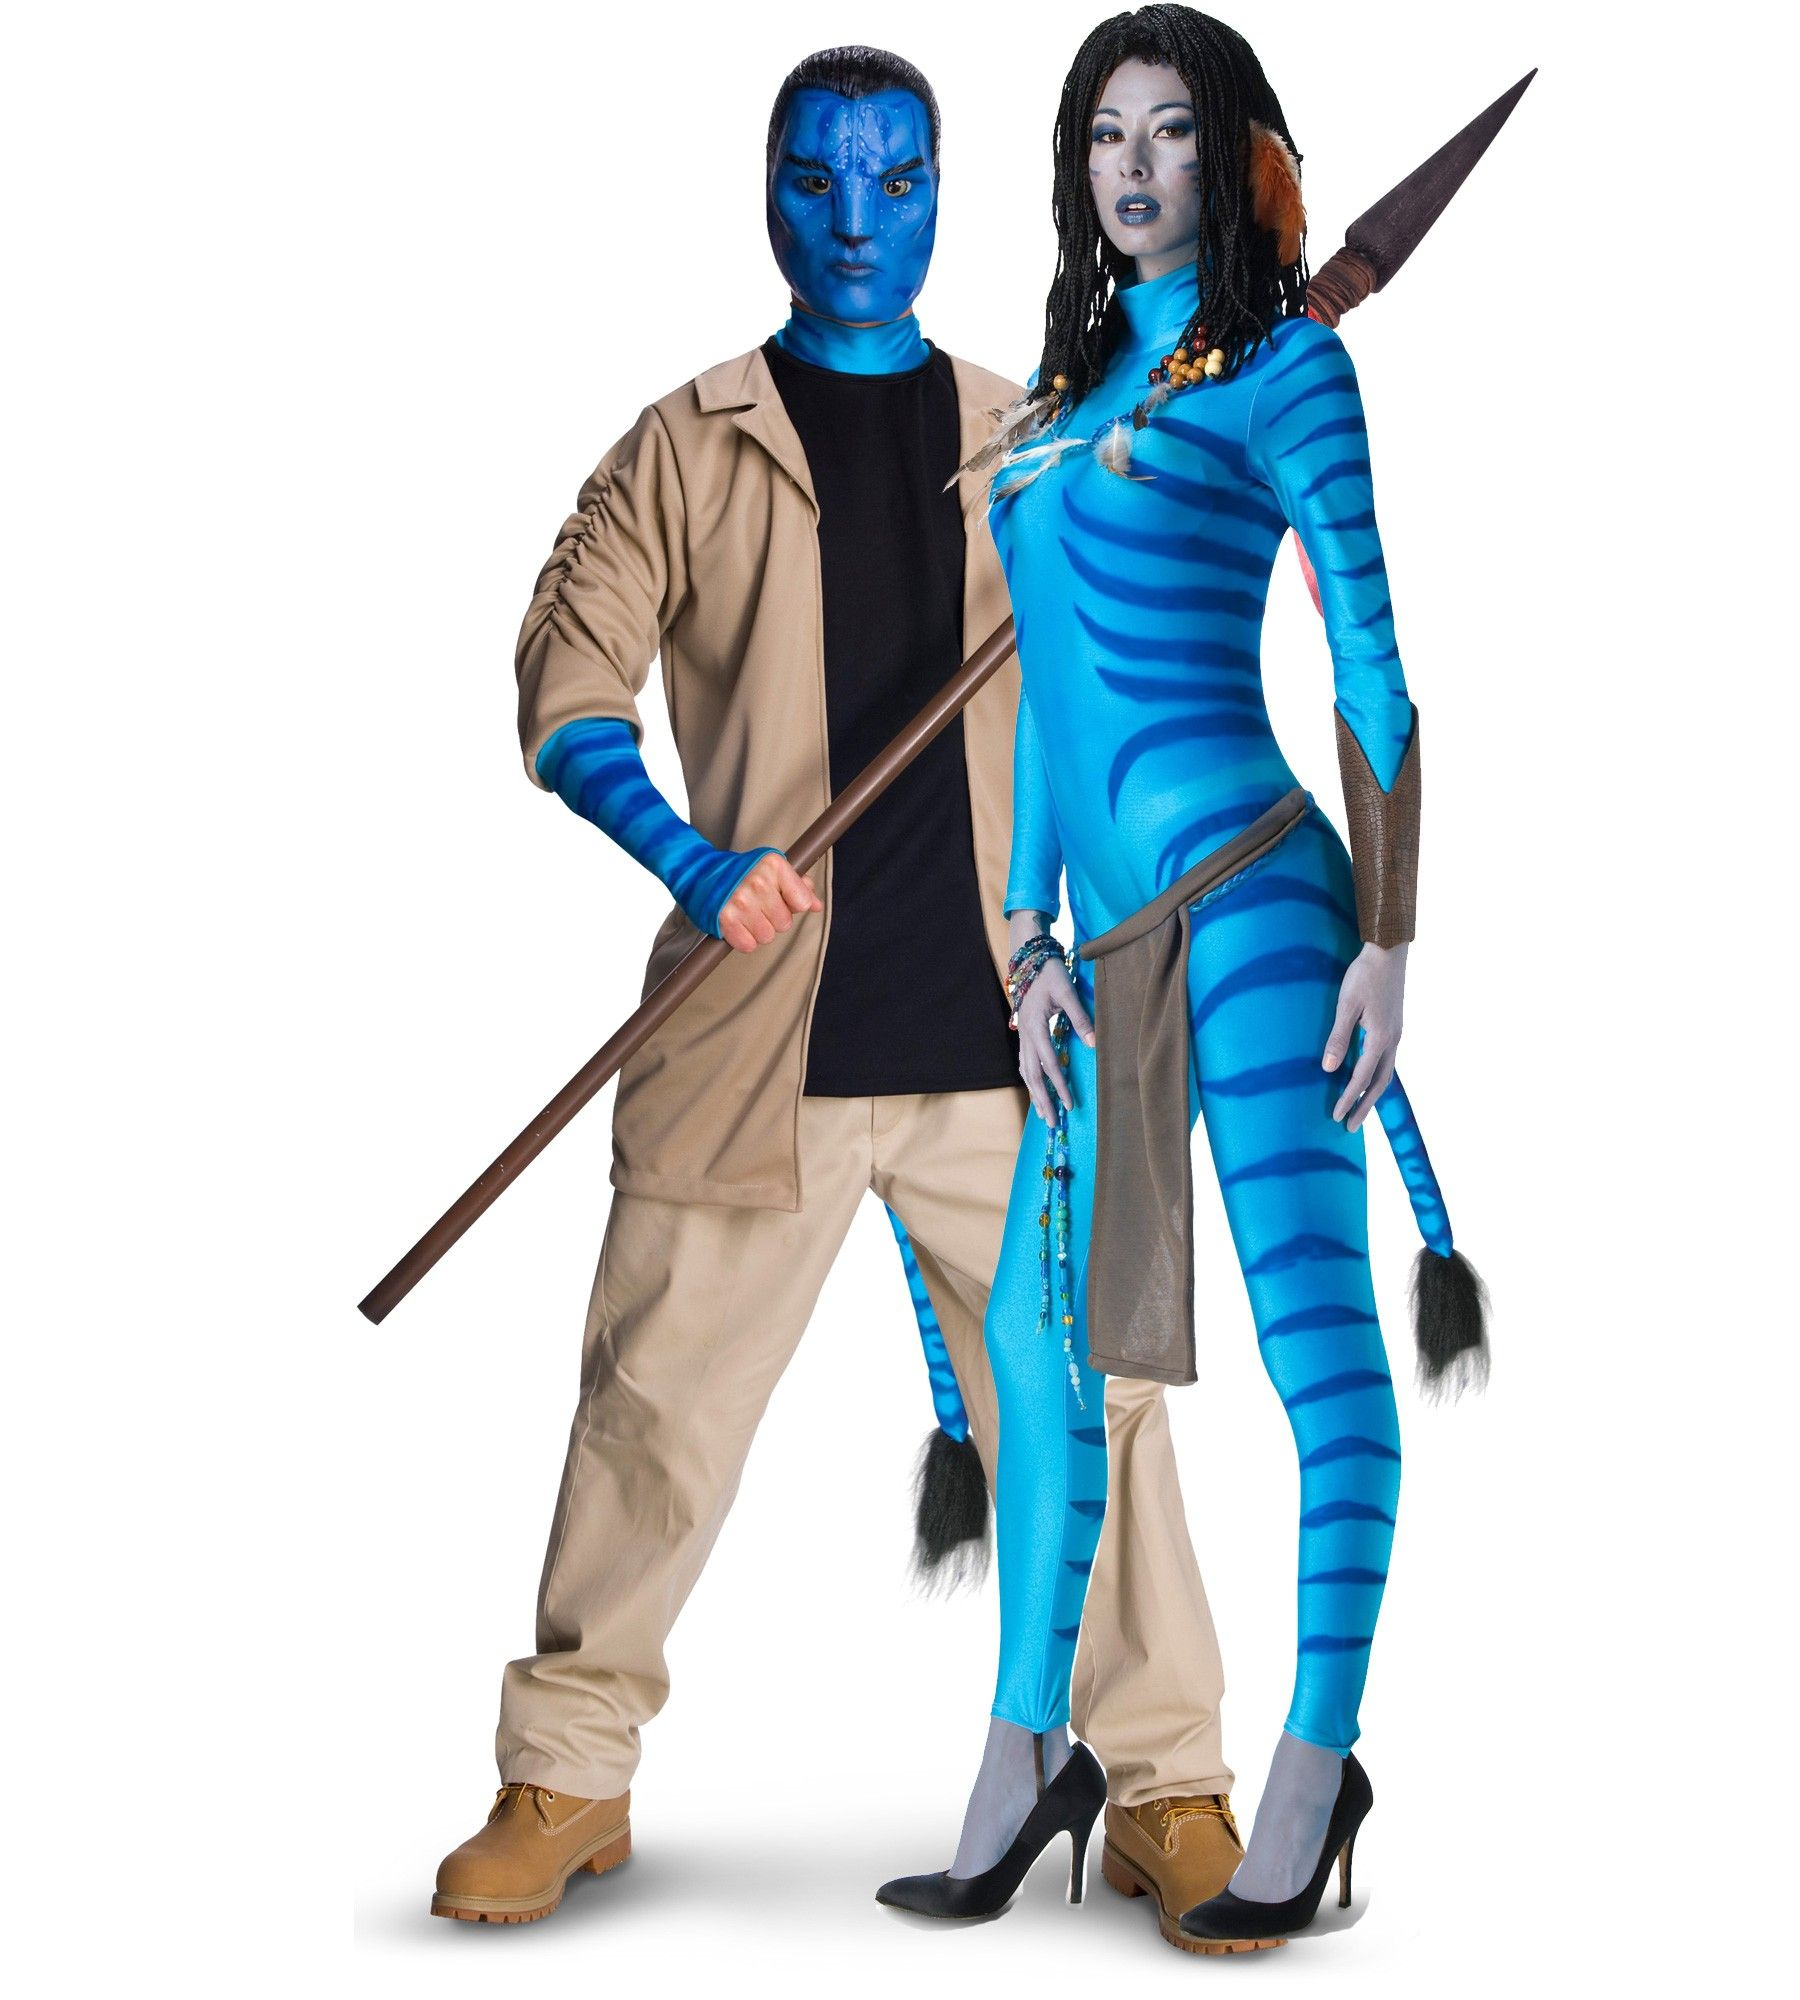 sexy avatar couples costumes sexy couples costumes pinterest costumes. Black Bedroom Furniture Sets. Home Design Ideas